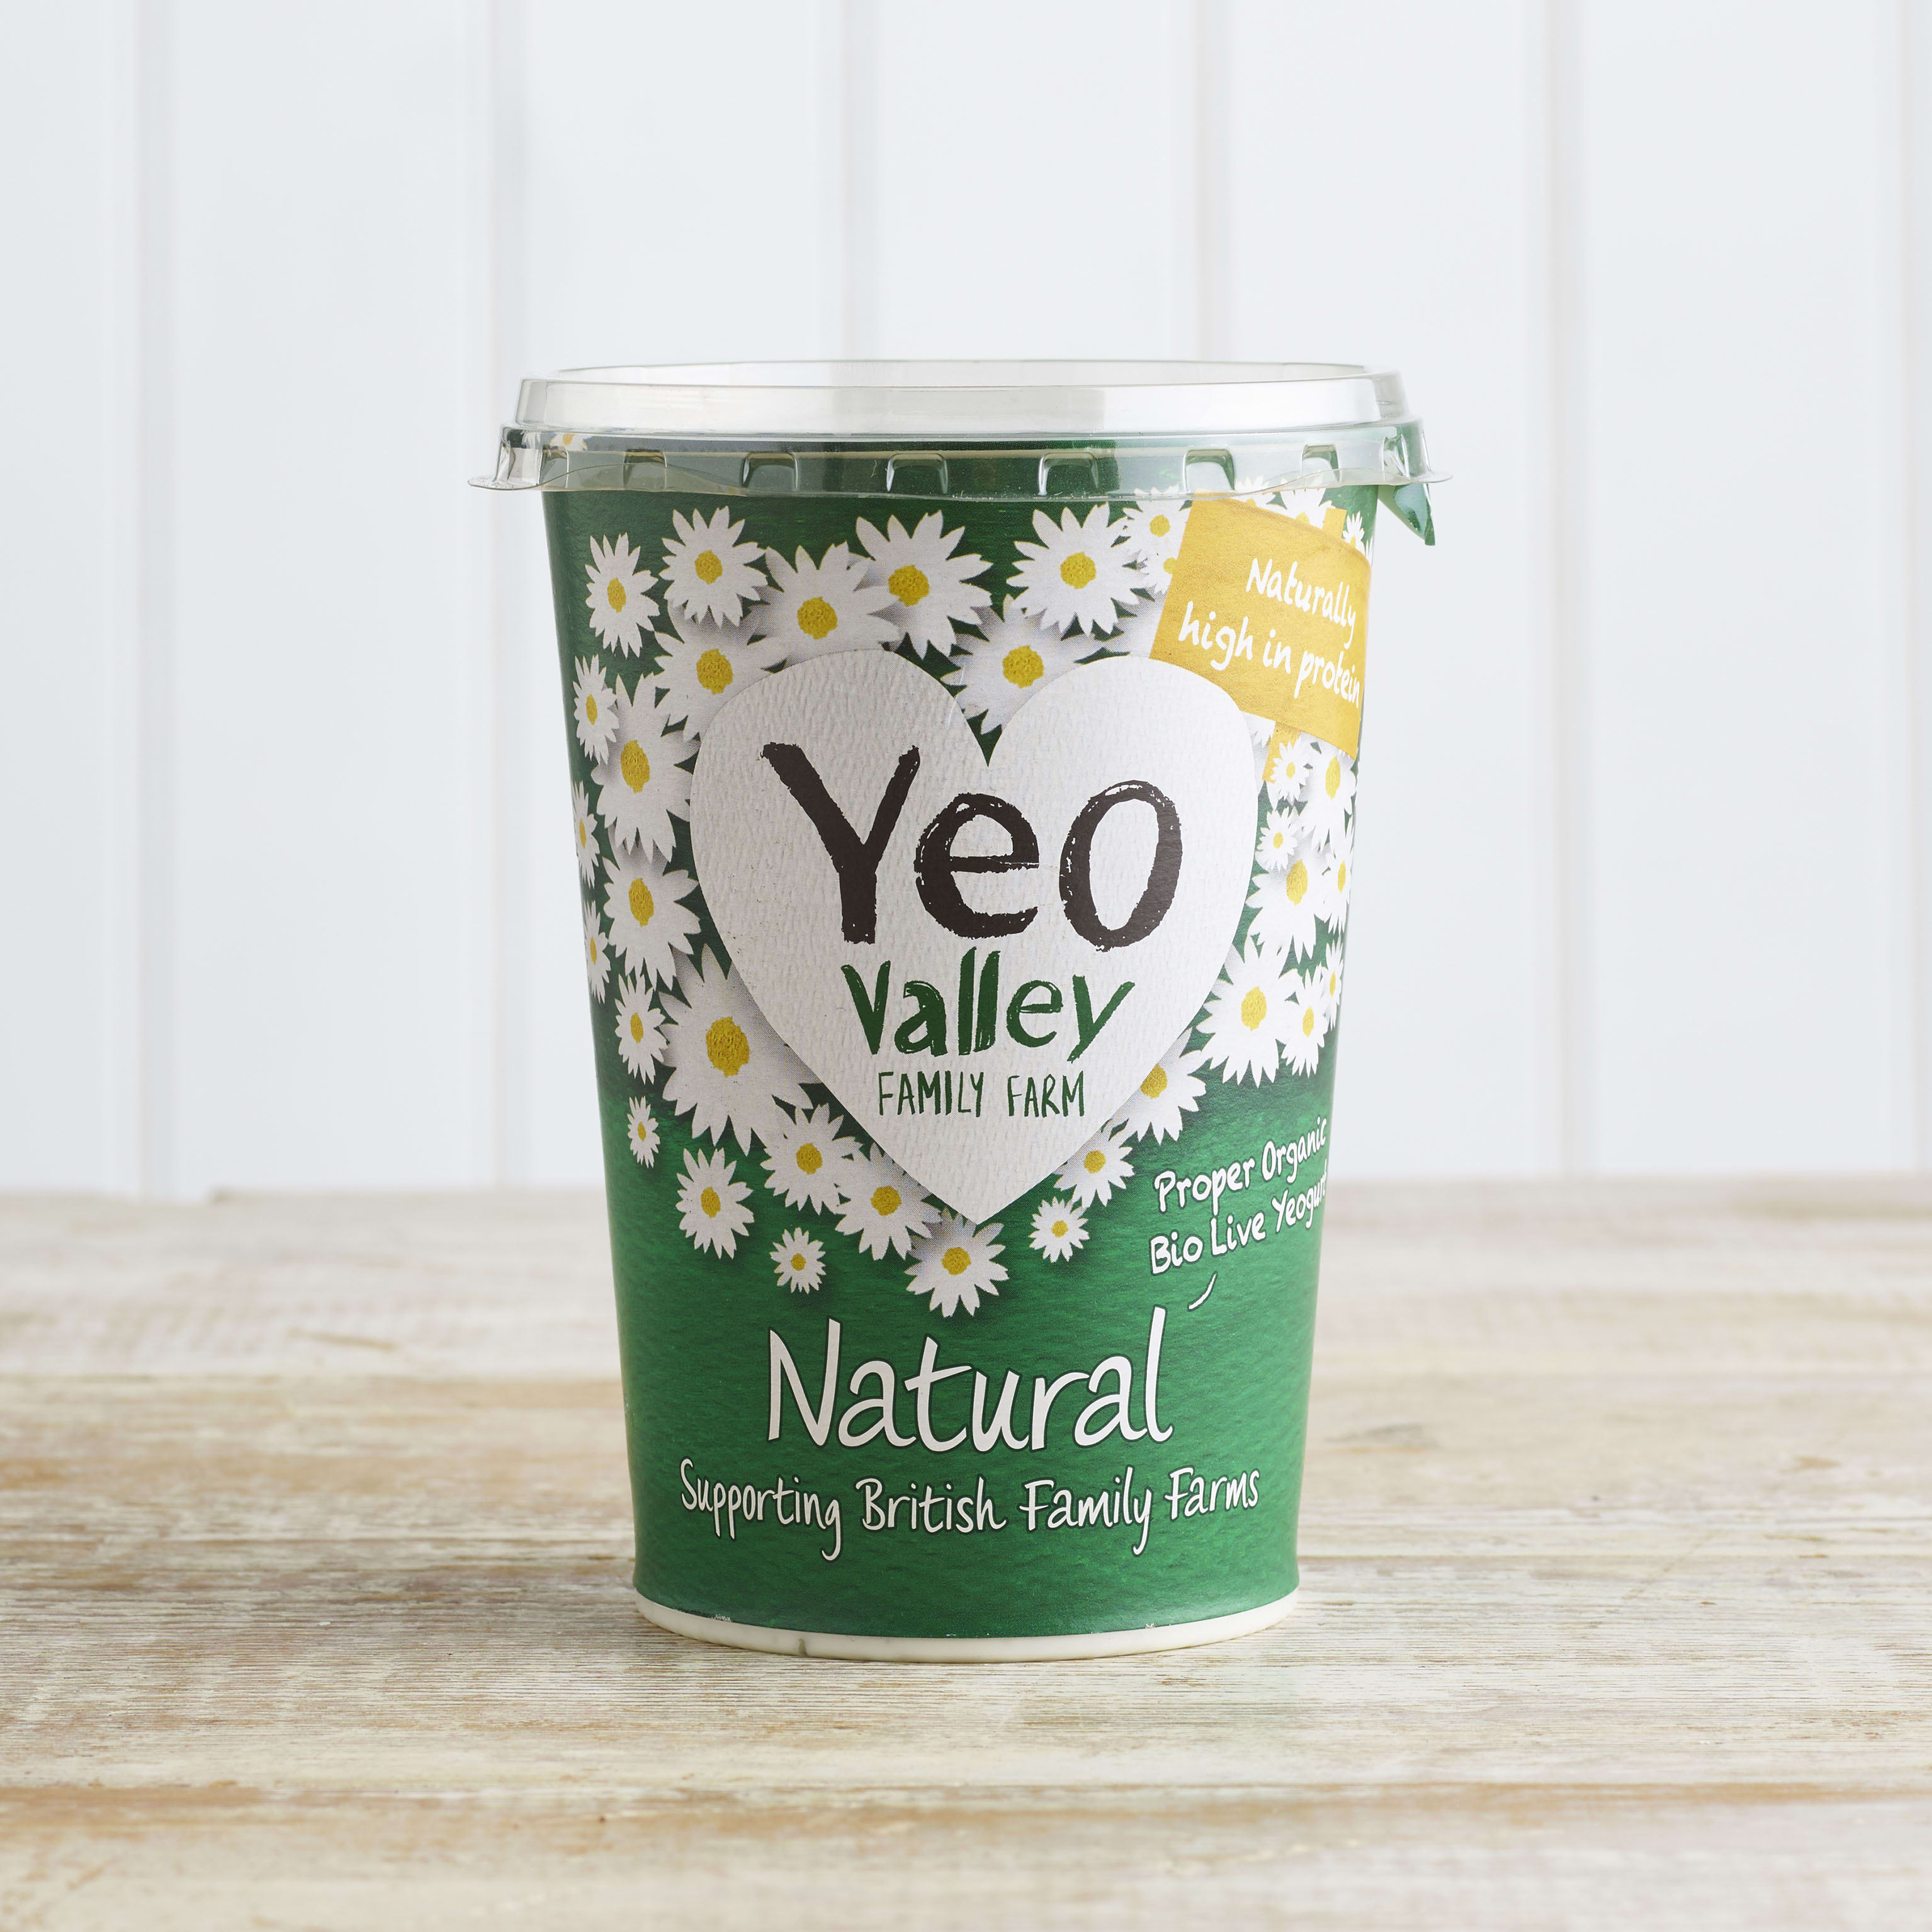 Yeo Valley Organic Natural Yoghurt, 500g